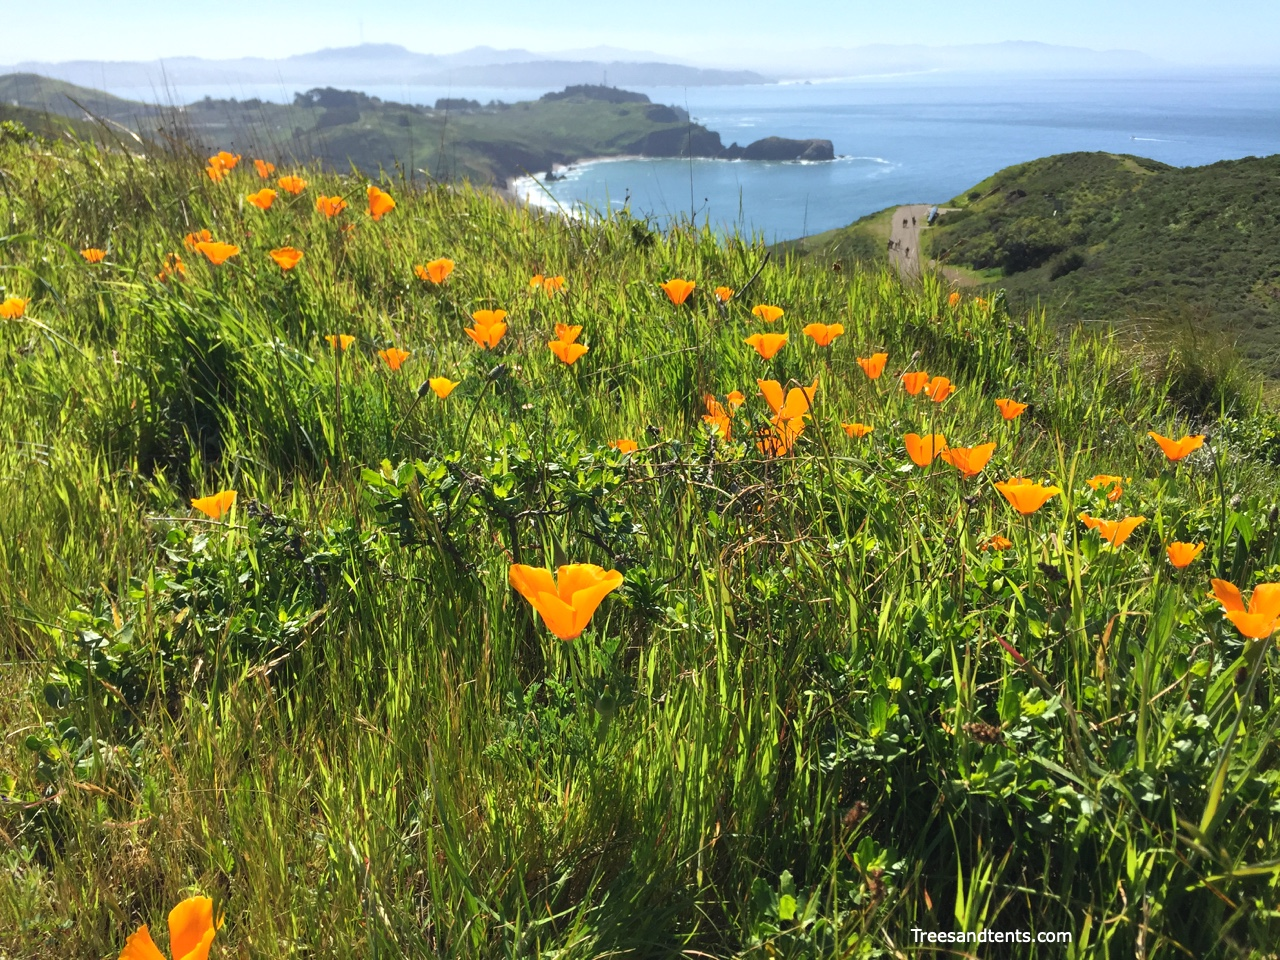 Poppies on the California Coastal Trail in the Marin headlands